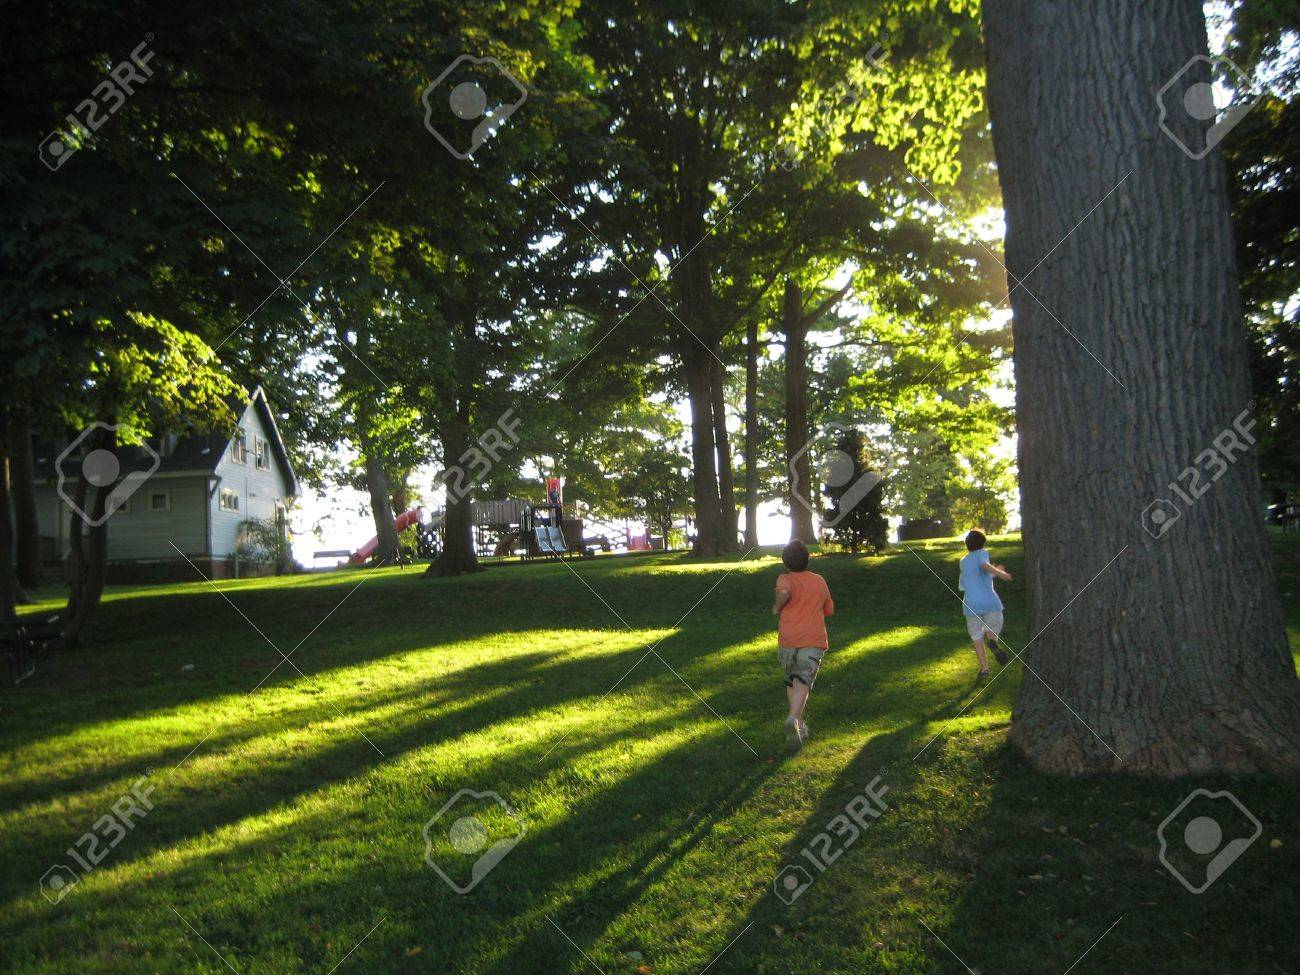 Two Brothers Running By A Tree In A Park Stock Photo Picture And Royalty Free Image Image 6371300